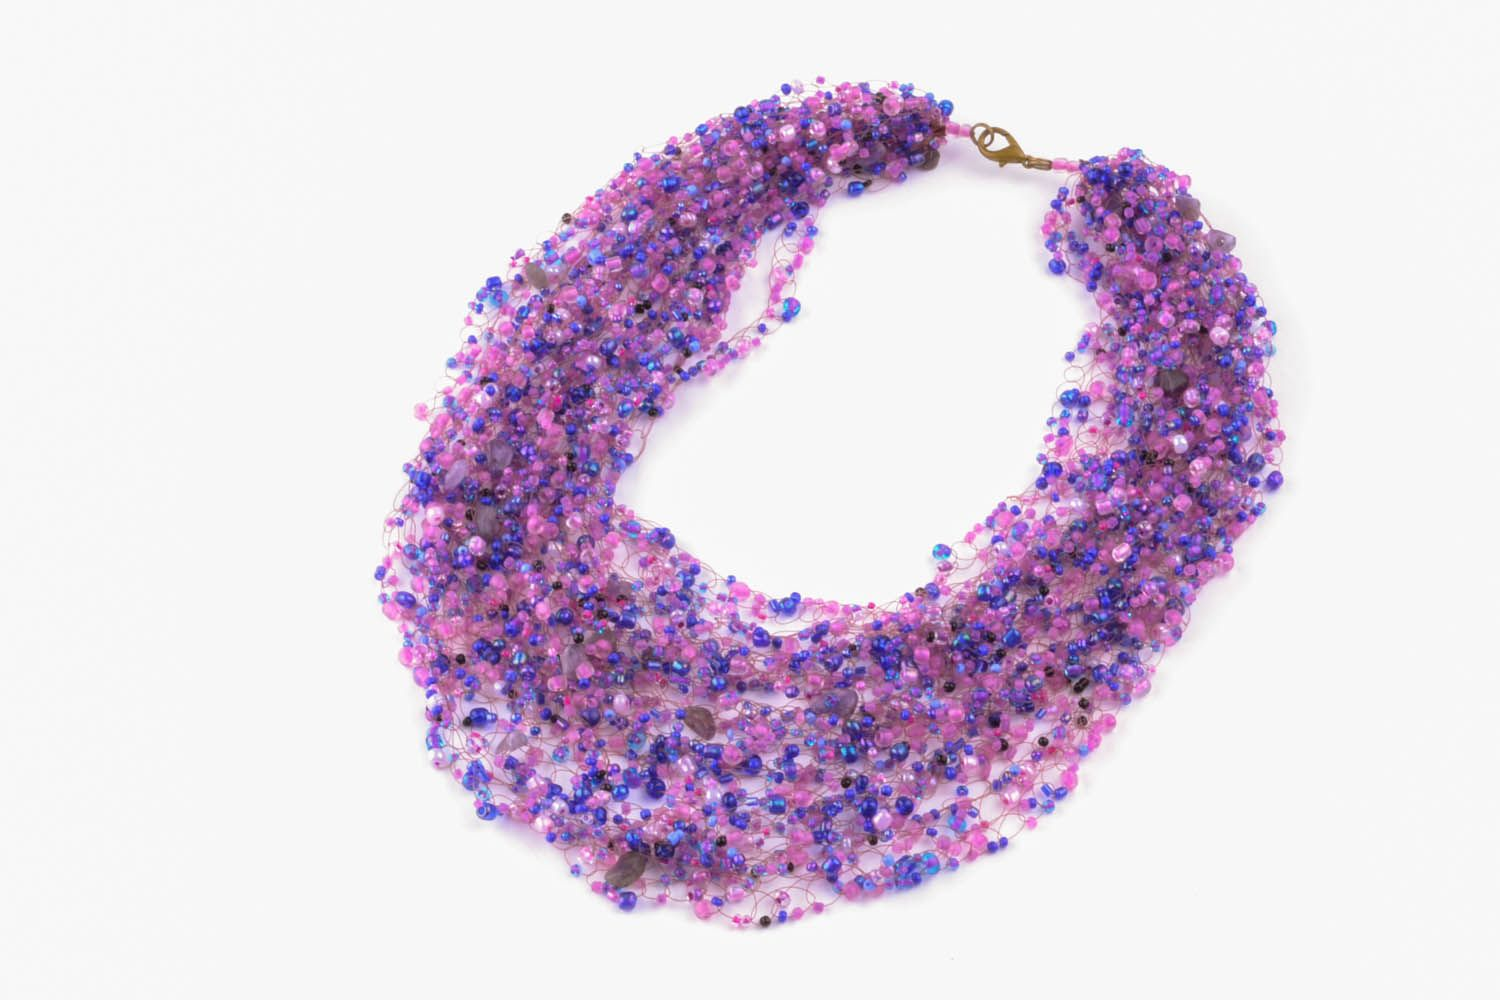 Purple necklace with natural stones photo 2